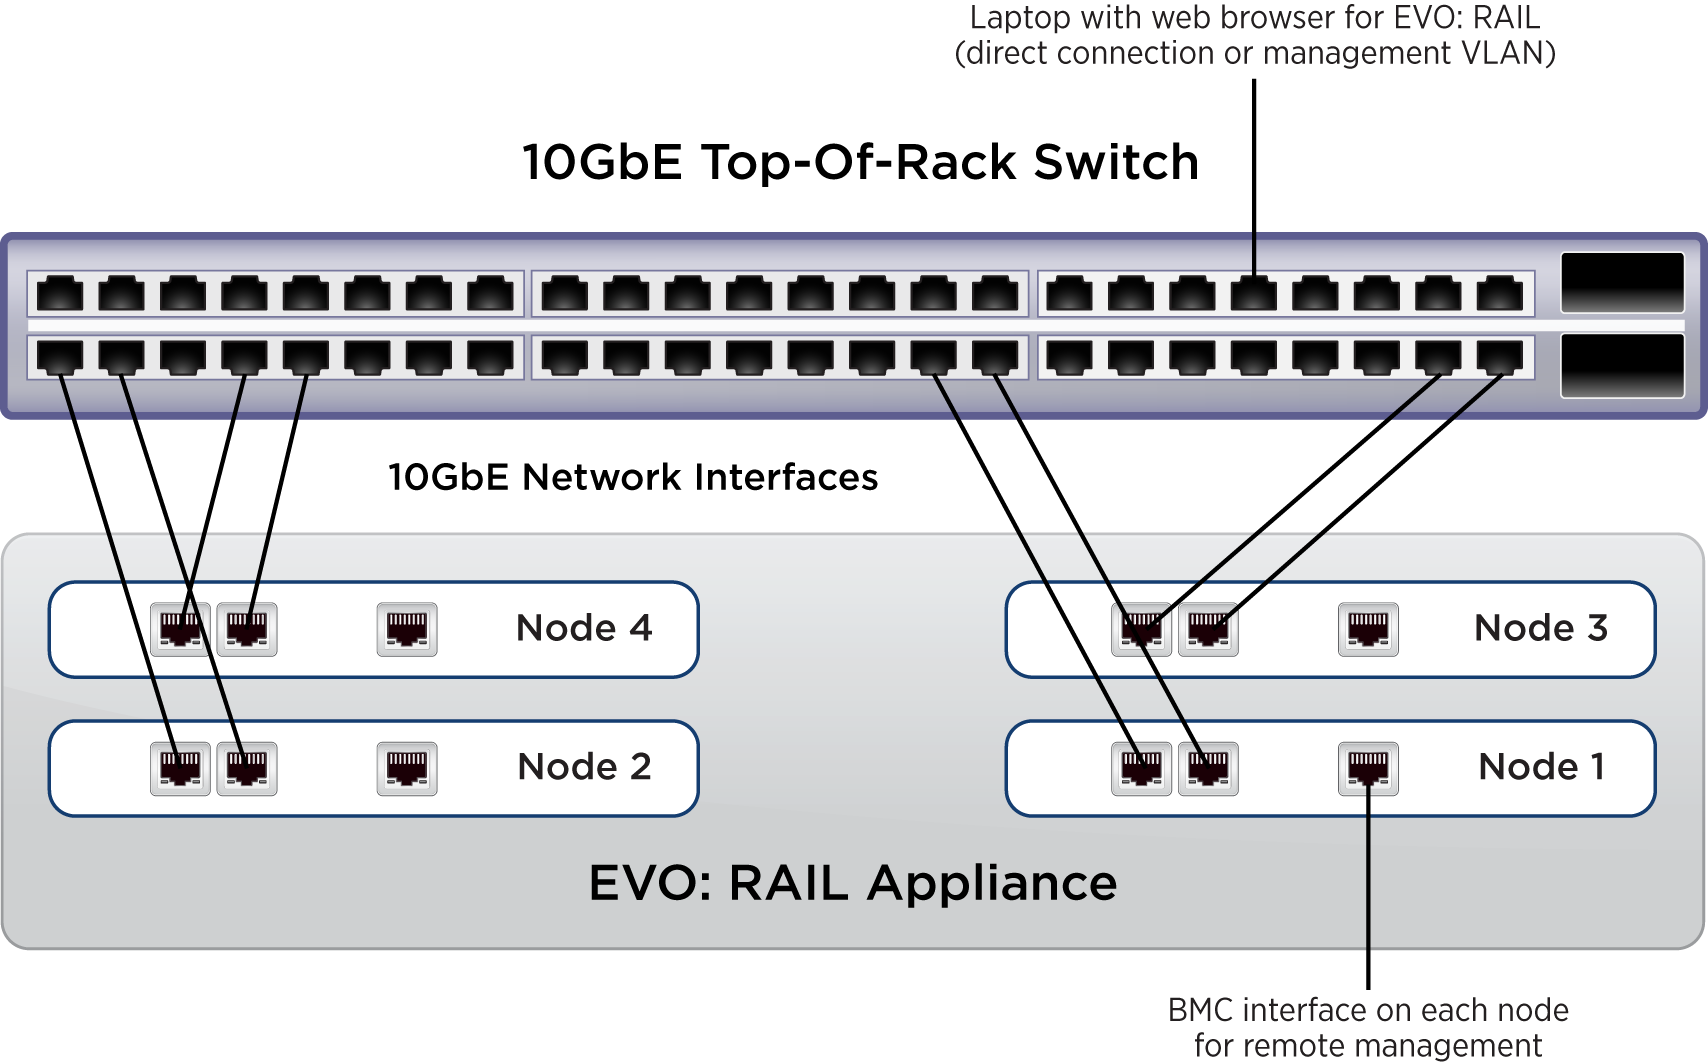 Deployment, Configuration, and Management EVO: RAIL Deployment EVO: RAIL deployment is simple, with just four steps: Step 1. Decide on EVO: RAIL network topology (VLANs and top-of-rack switch).